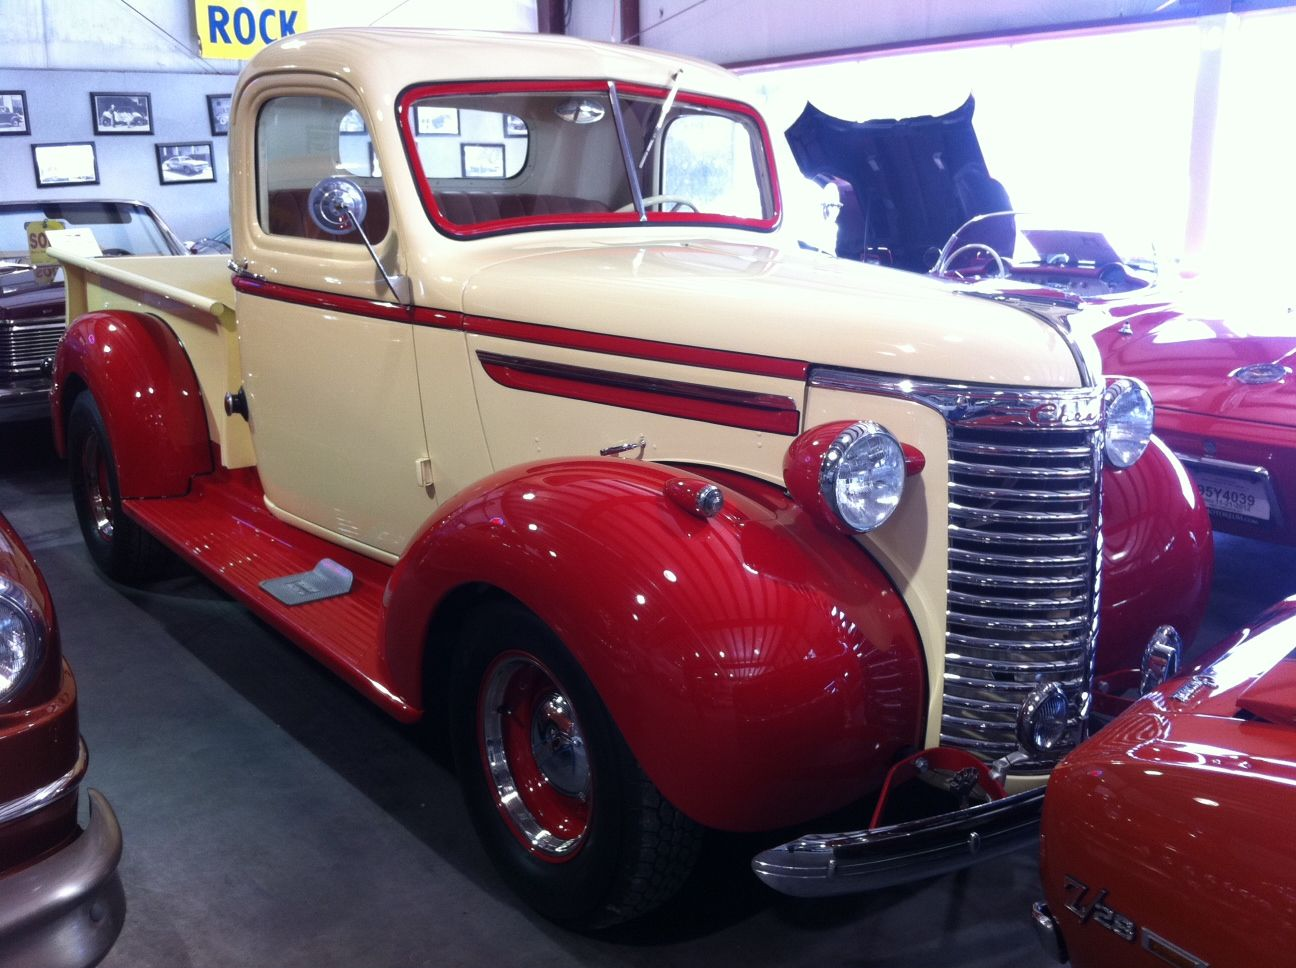 1940 chevy truck for sale - Google - 165.1KB